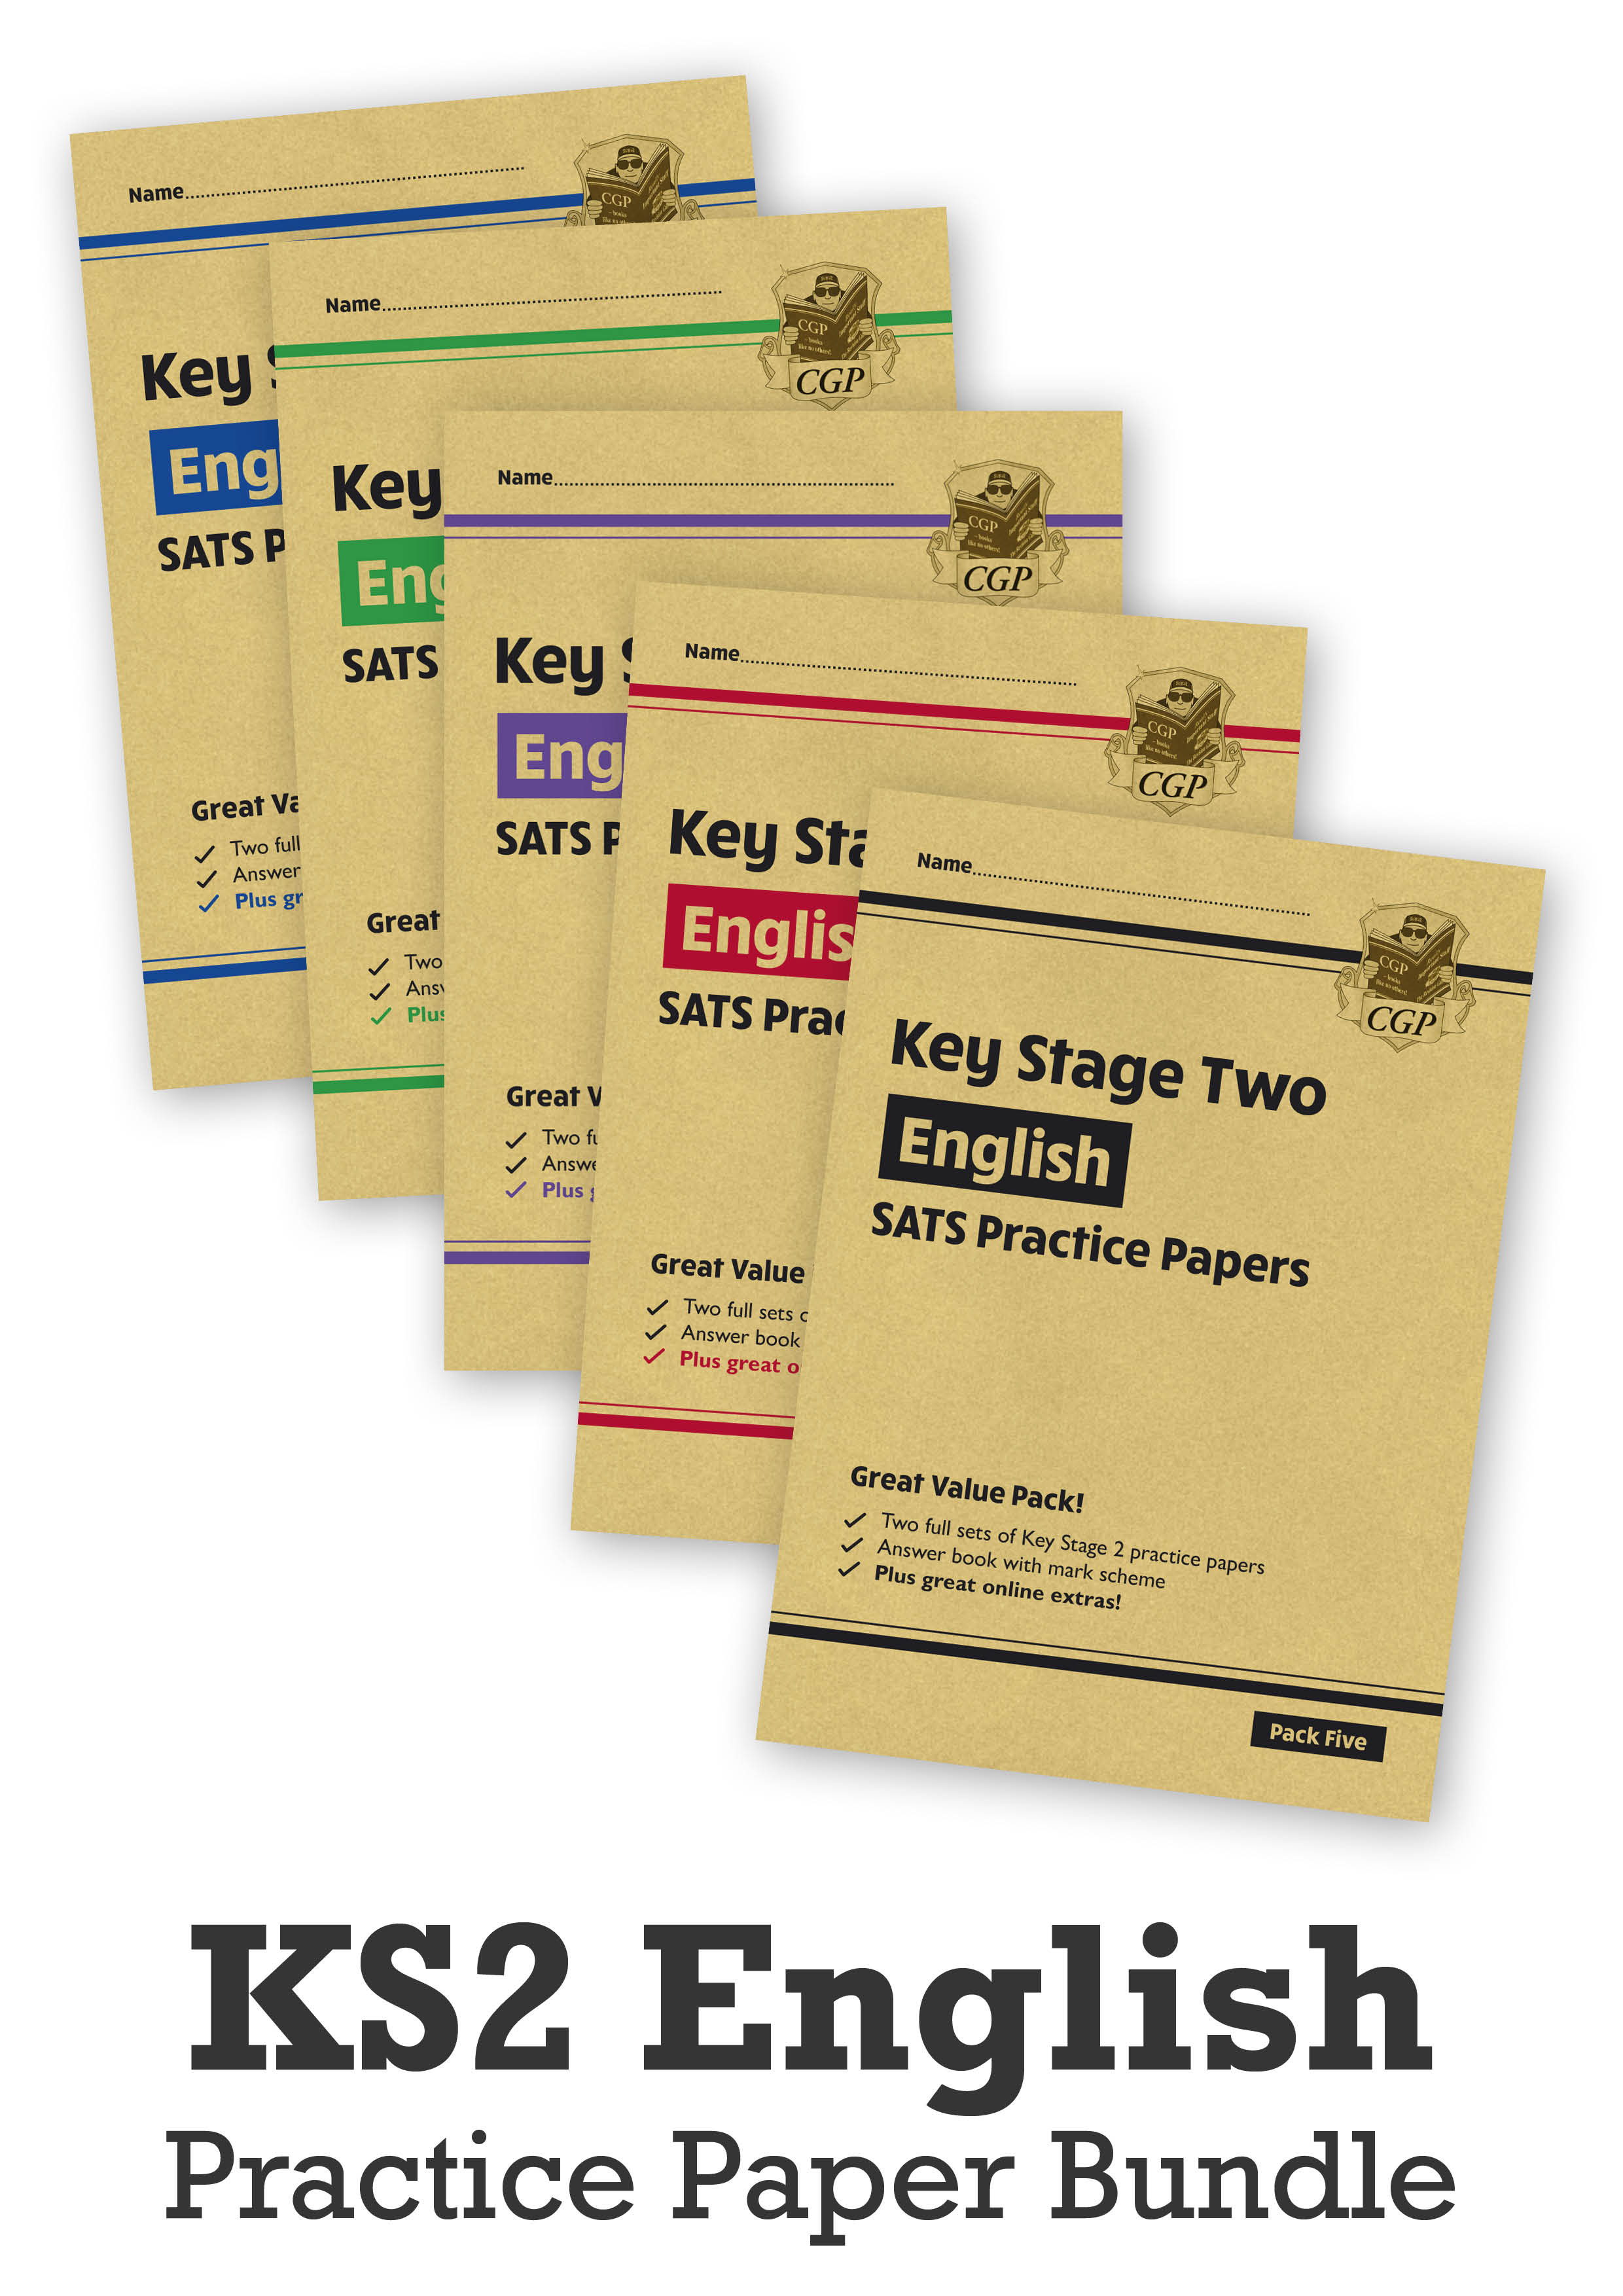 EHB5P24 - KS2 English SATS Practice Paper Bundle: Packs 1, 2, 3, 4 & 5 (with Online Extras)